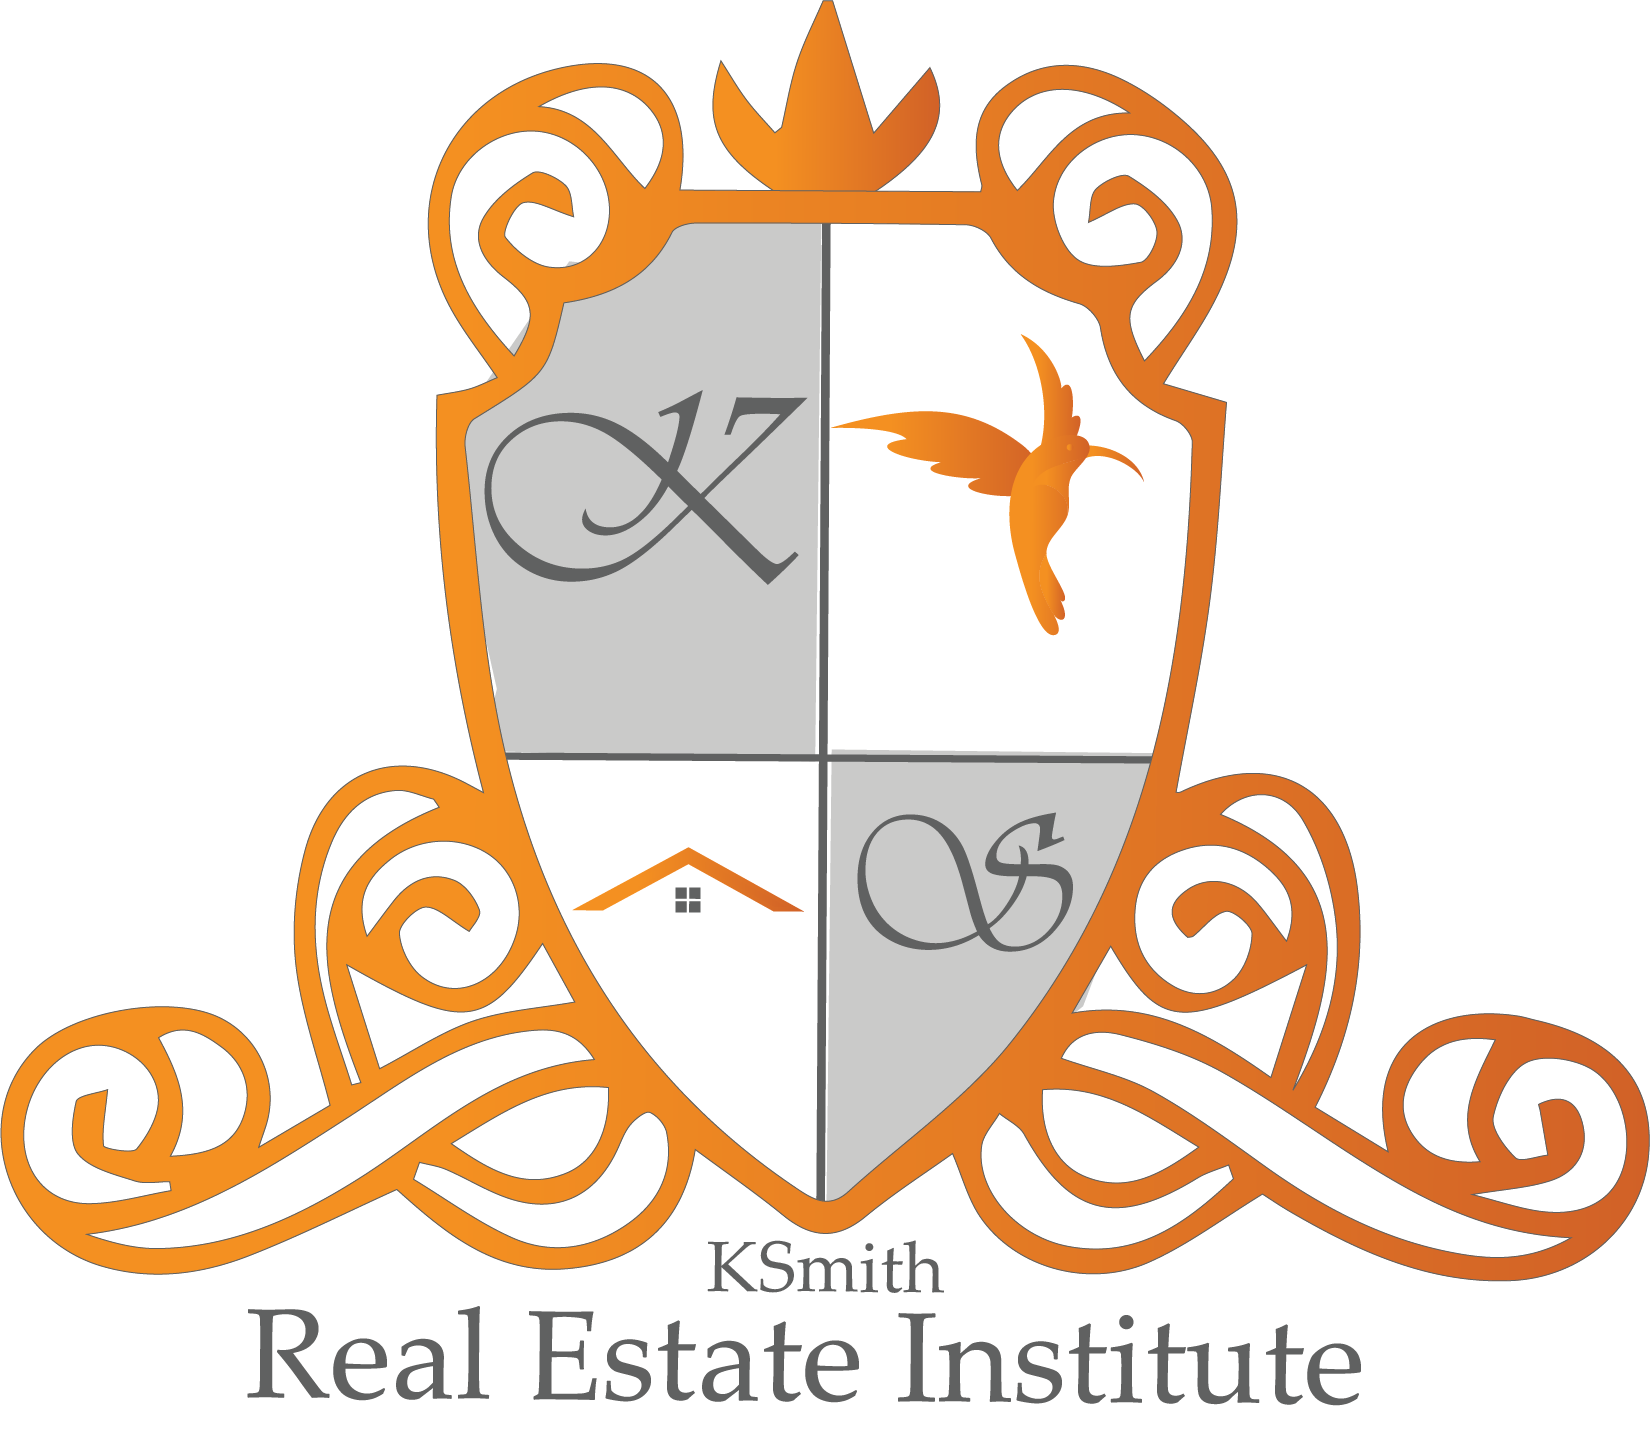 KSmith Real Estate Institute Logo Shield